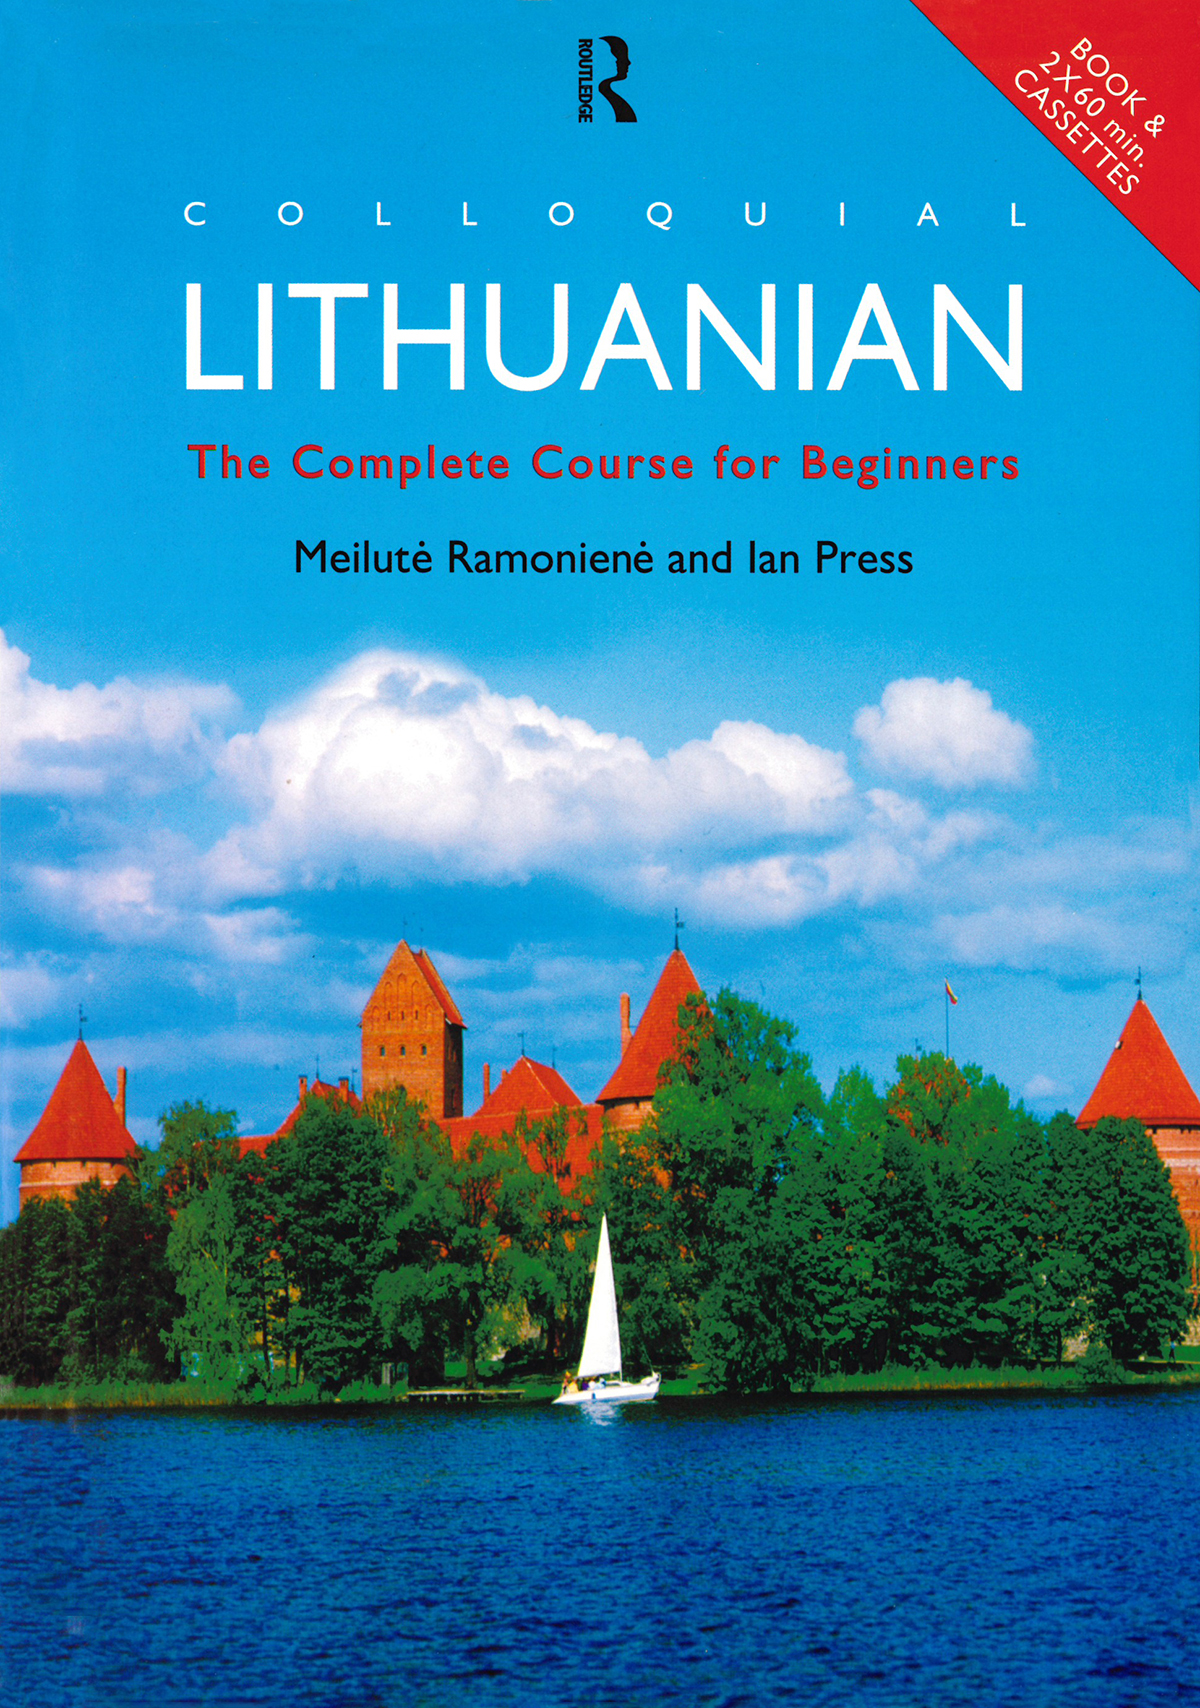 Colloquial Lithuanian. The Complete Course for Beginners